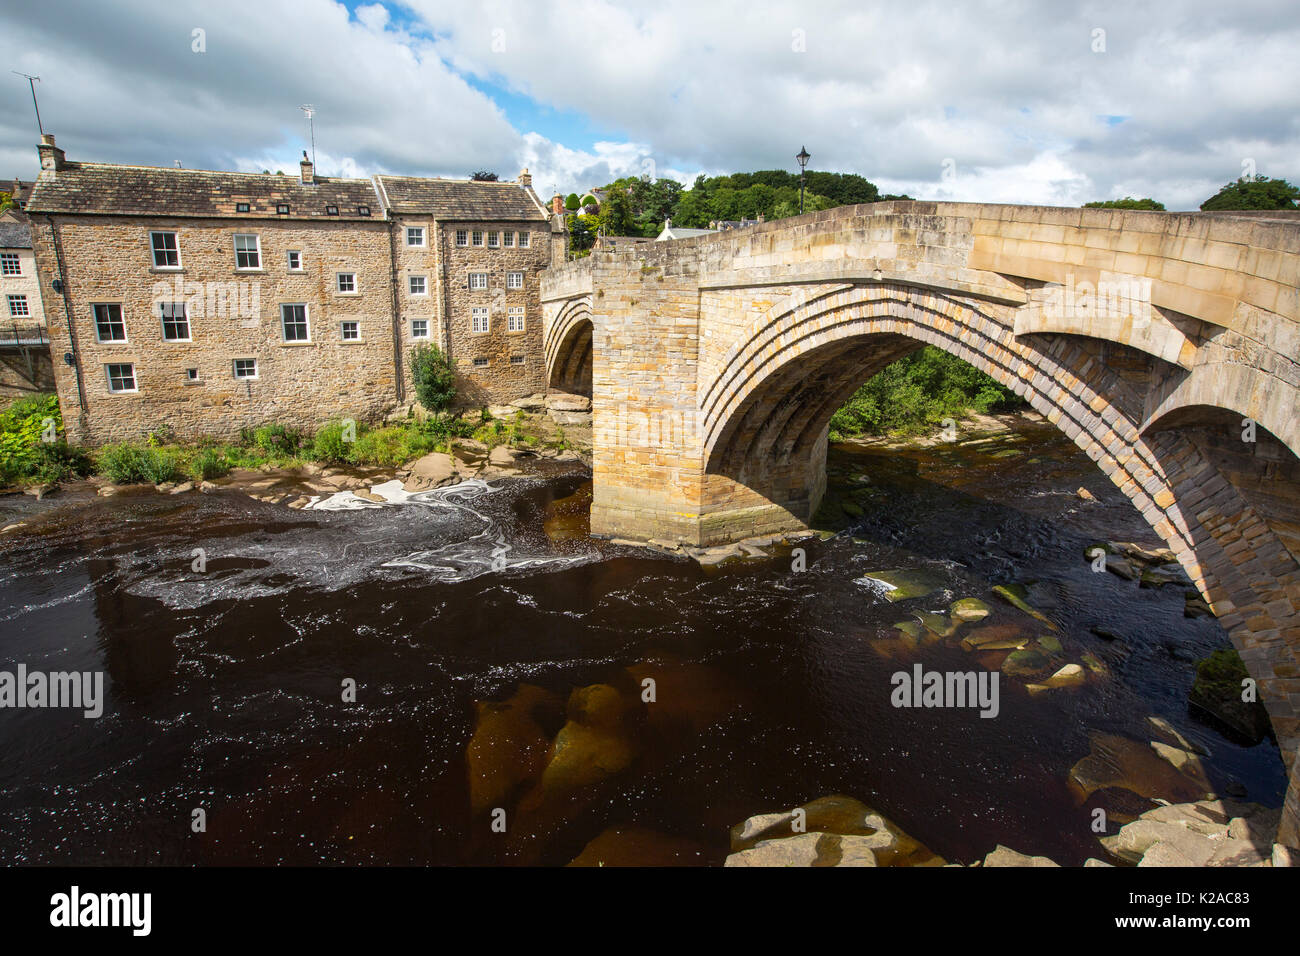 Old housing and the County Bridge crossing the River Tees in Barnard Castle, County durham, UK. - Stock Image